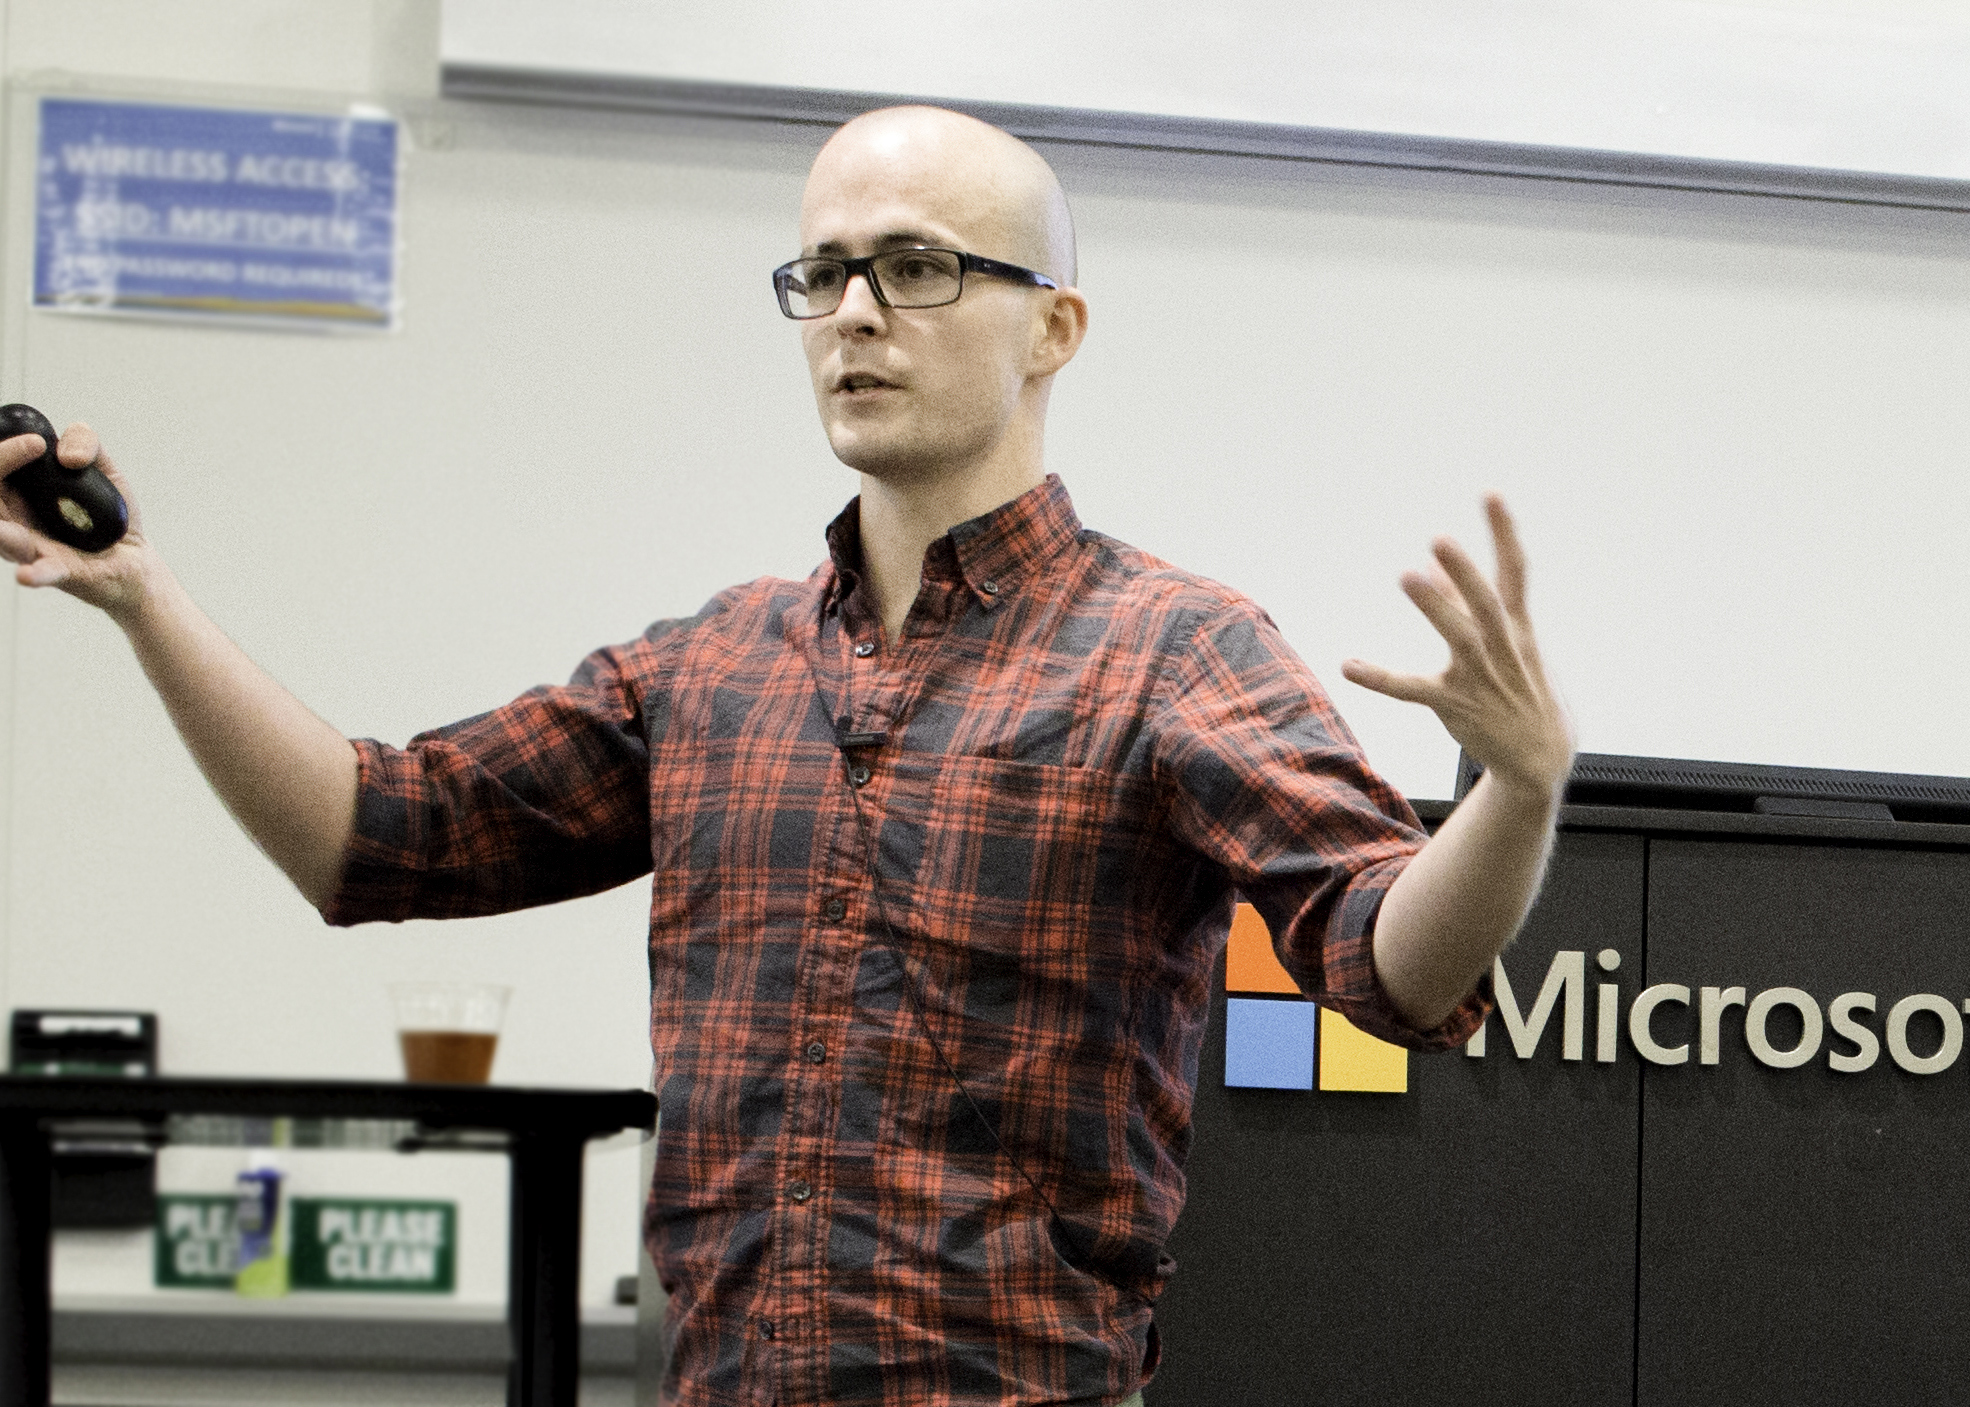 Roderick Campbell at Nonprofit Tech Week, Microsoft Silicon Valley